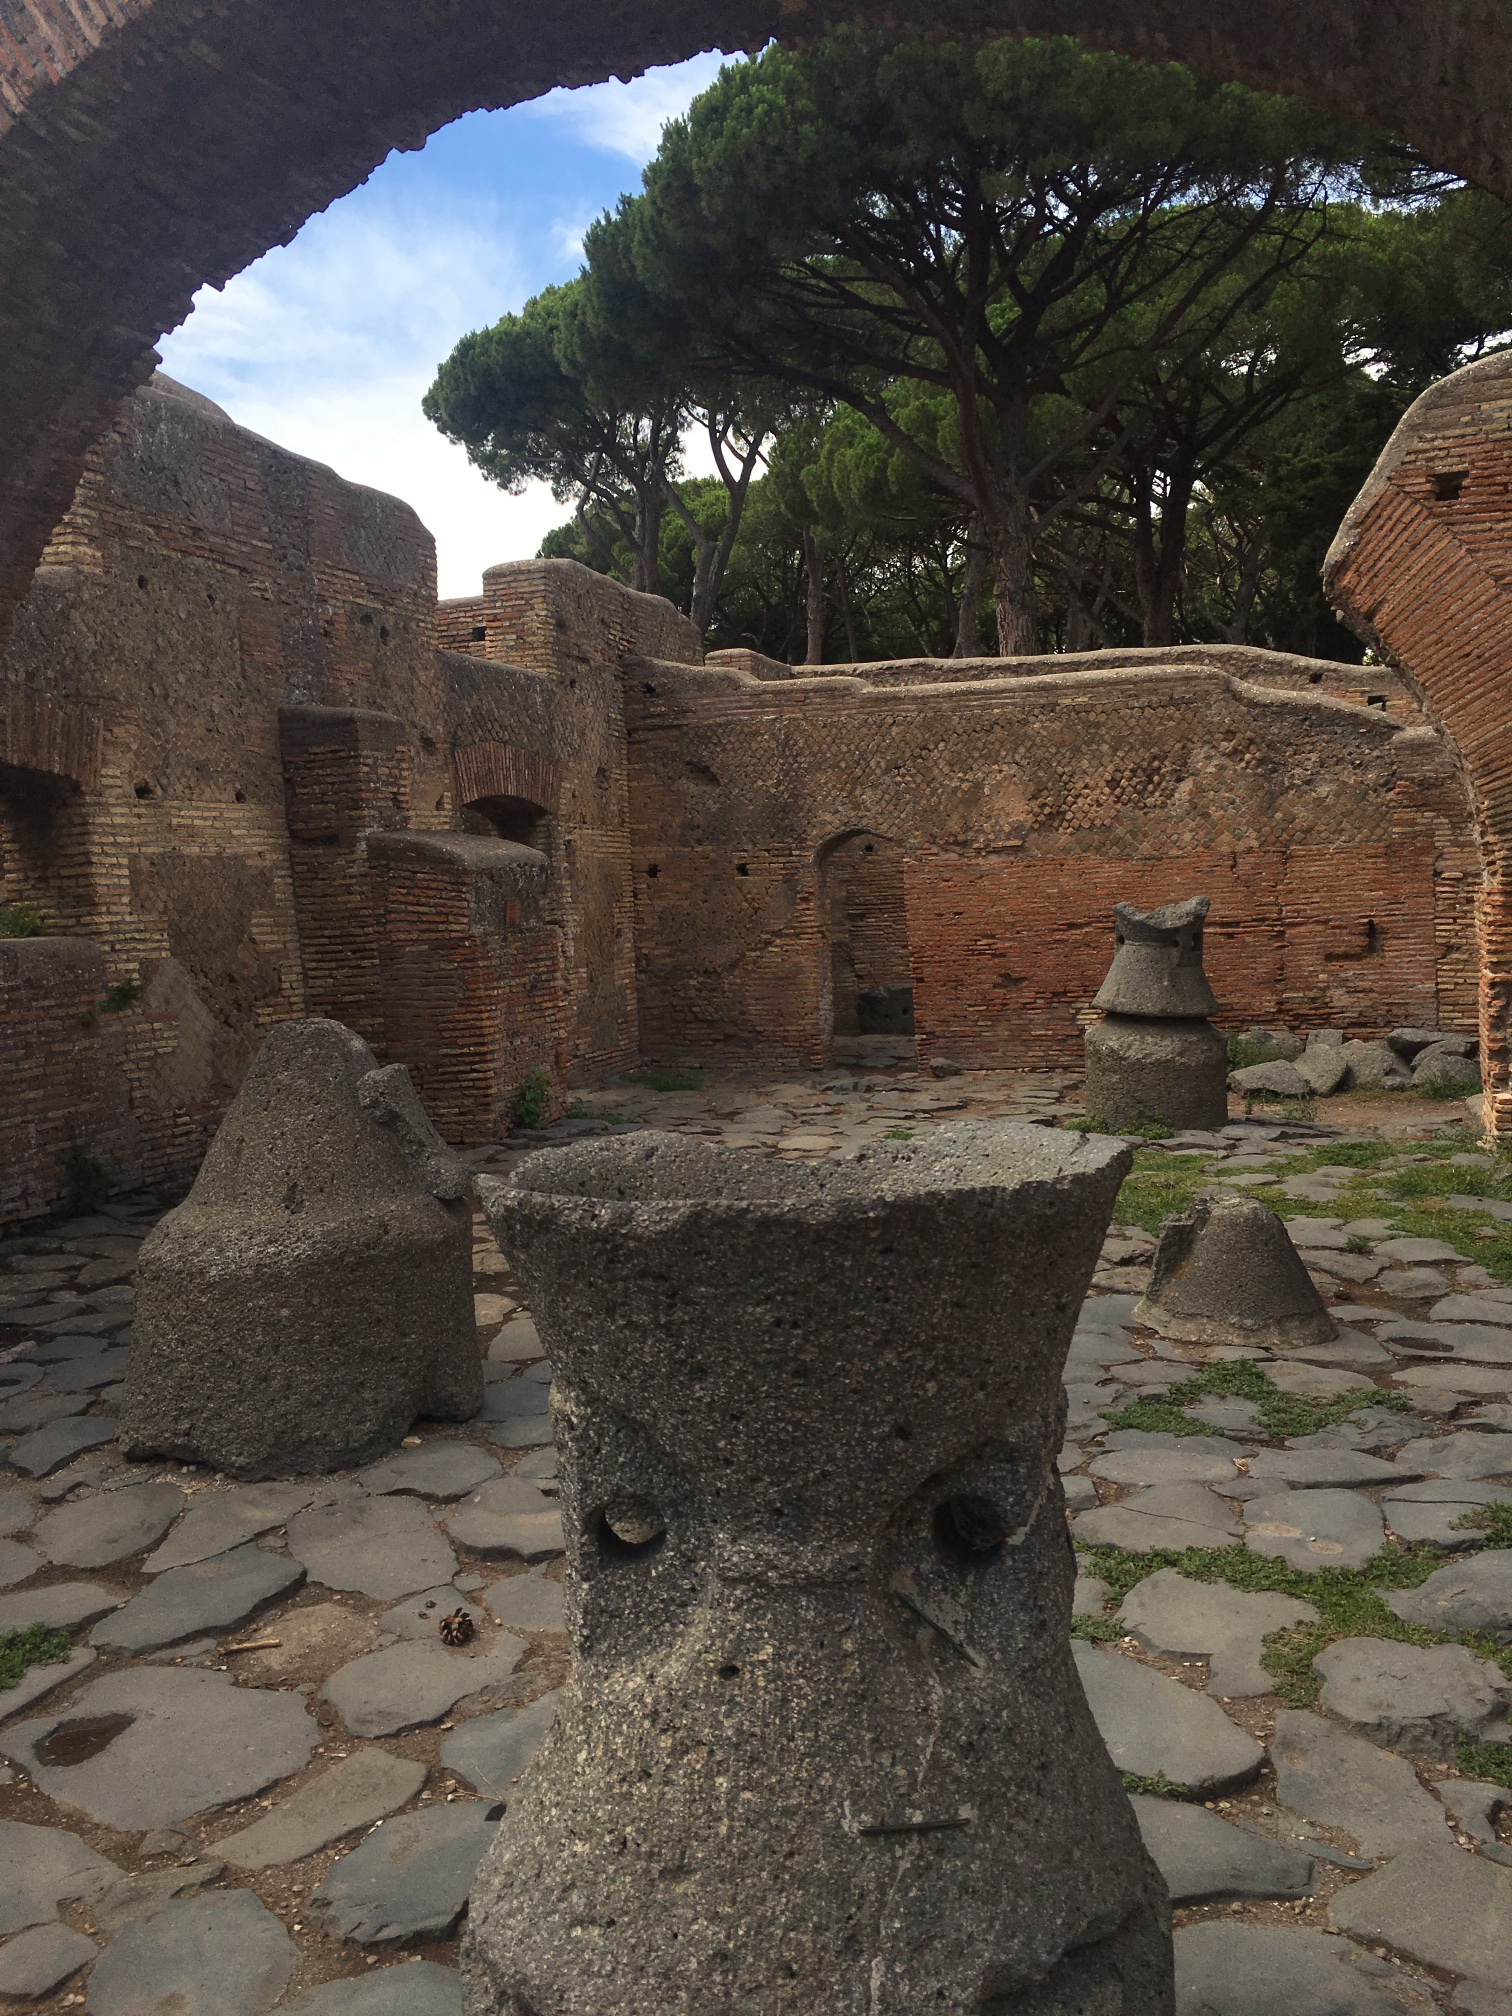 These lava stone contraptions were how they ground grain in the mills of Ostia. There were dozens of these, still exactly where they were 2,000 years ago.